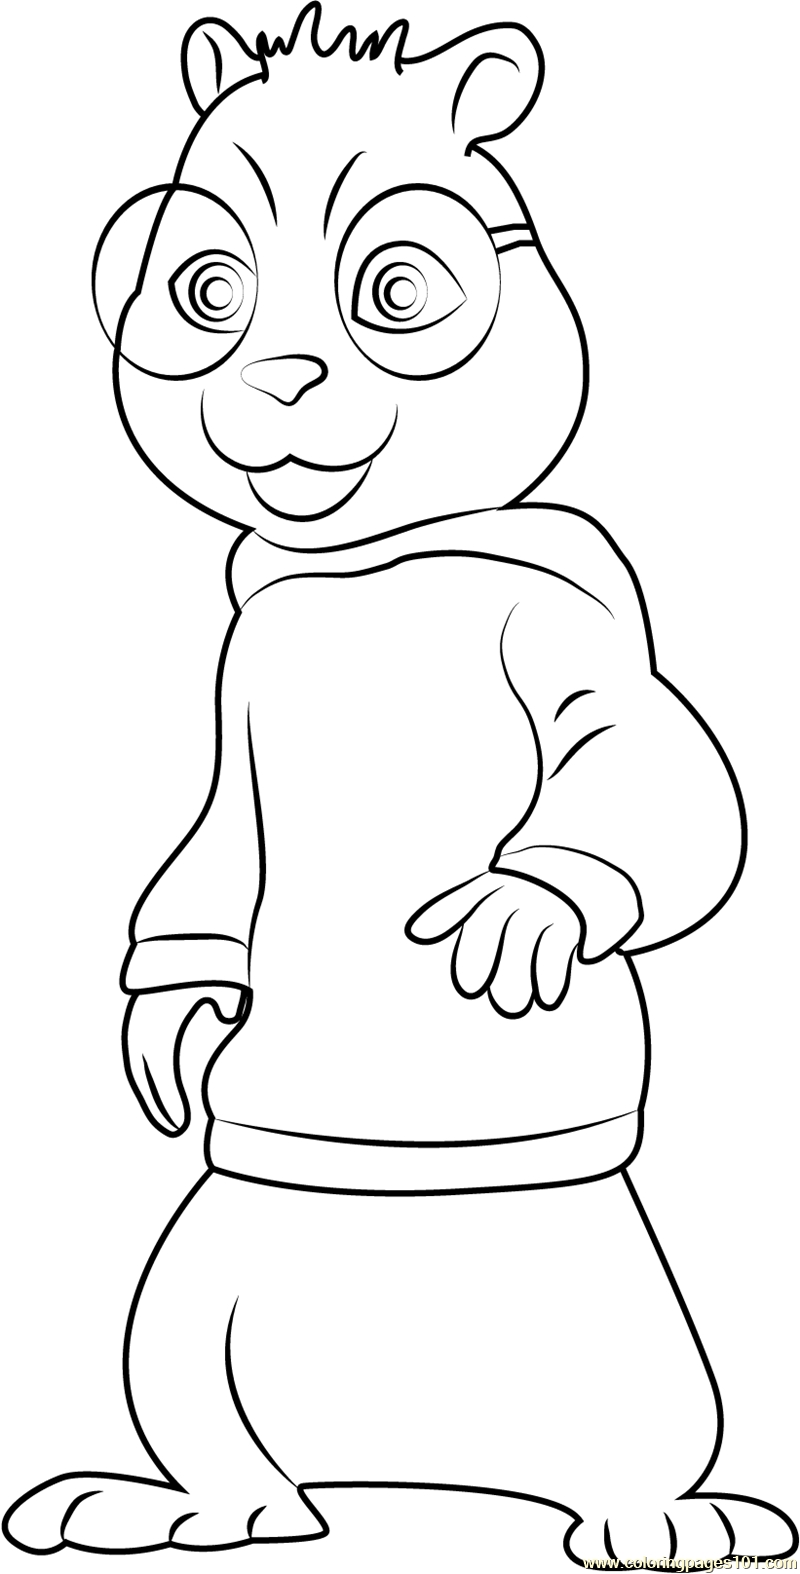 chipmunk coloring pages - chipmunks